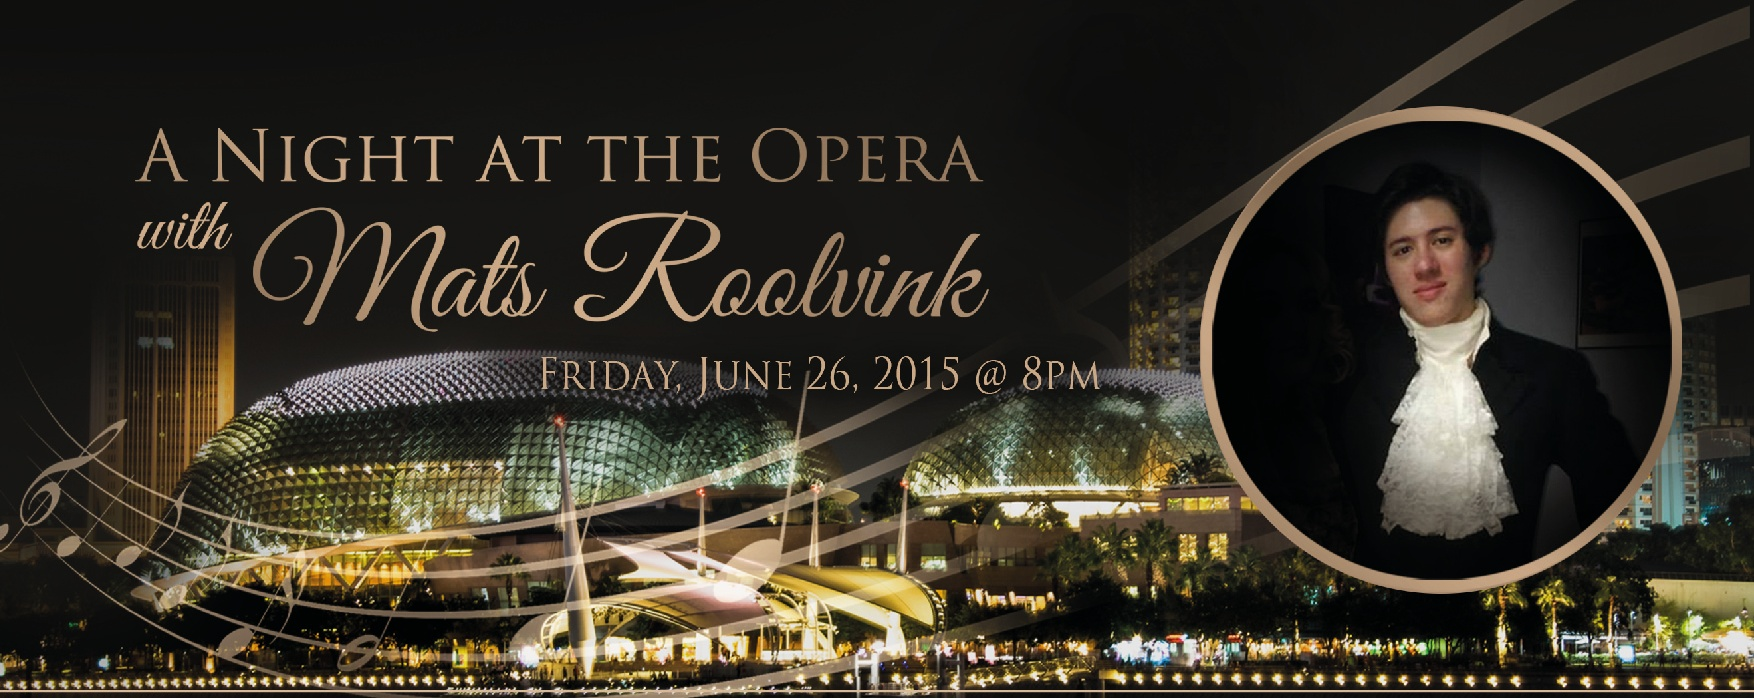 Night at the Opera with Mats Roolvink